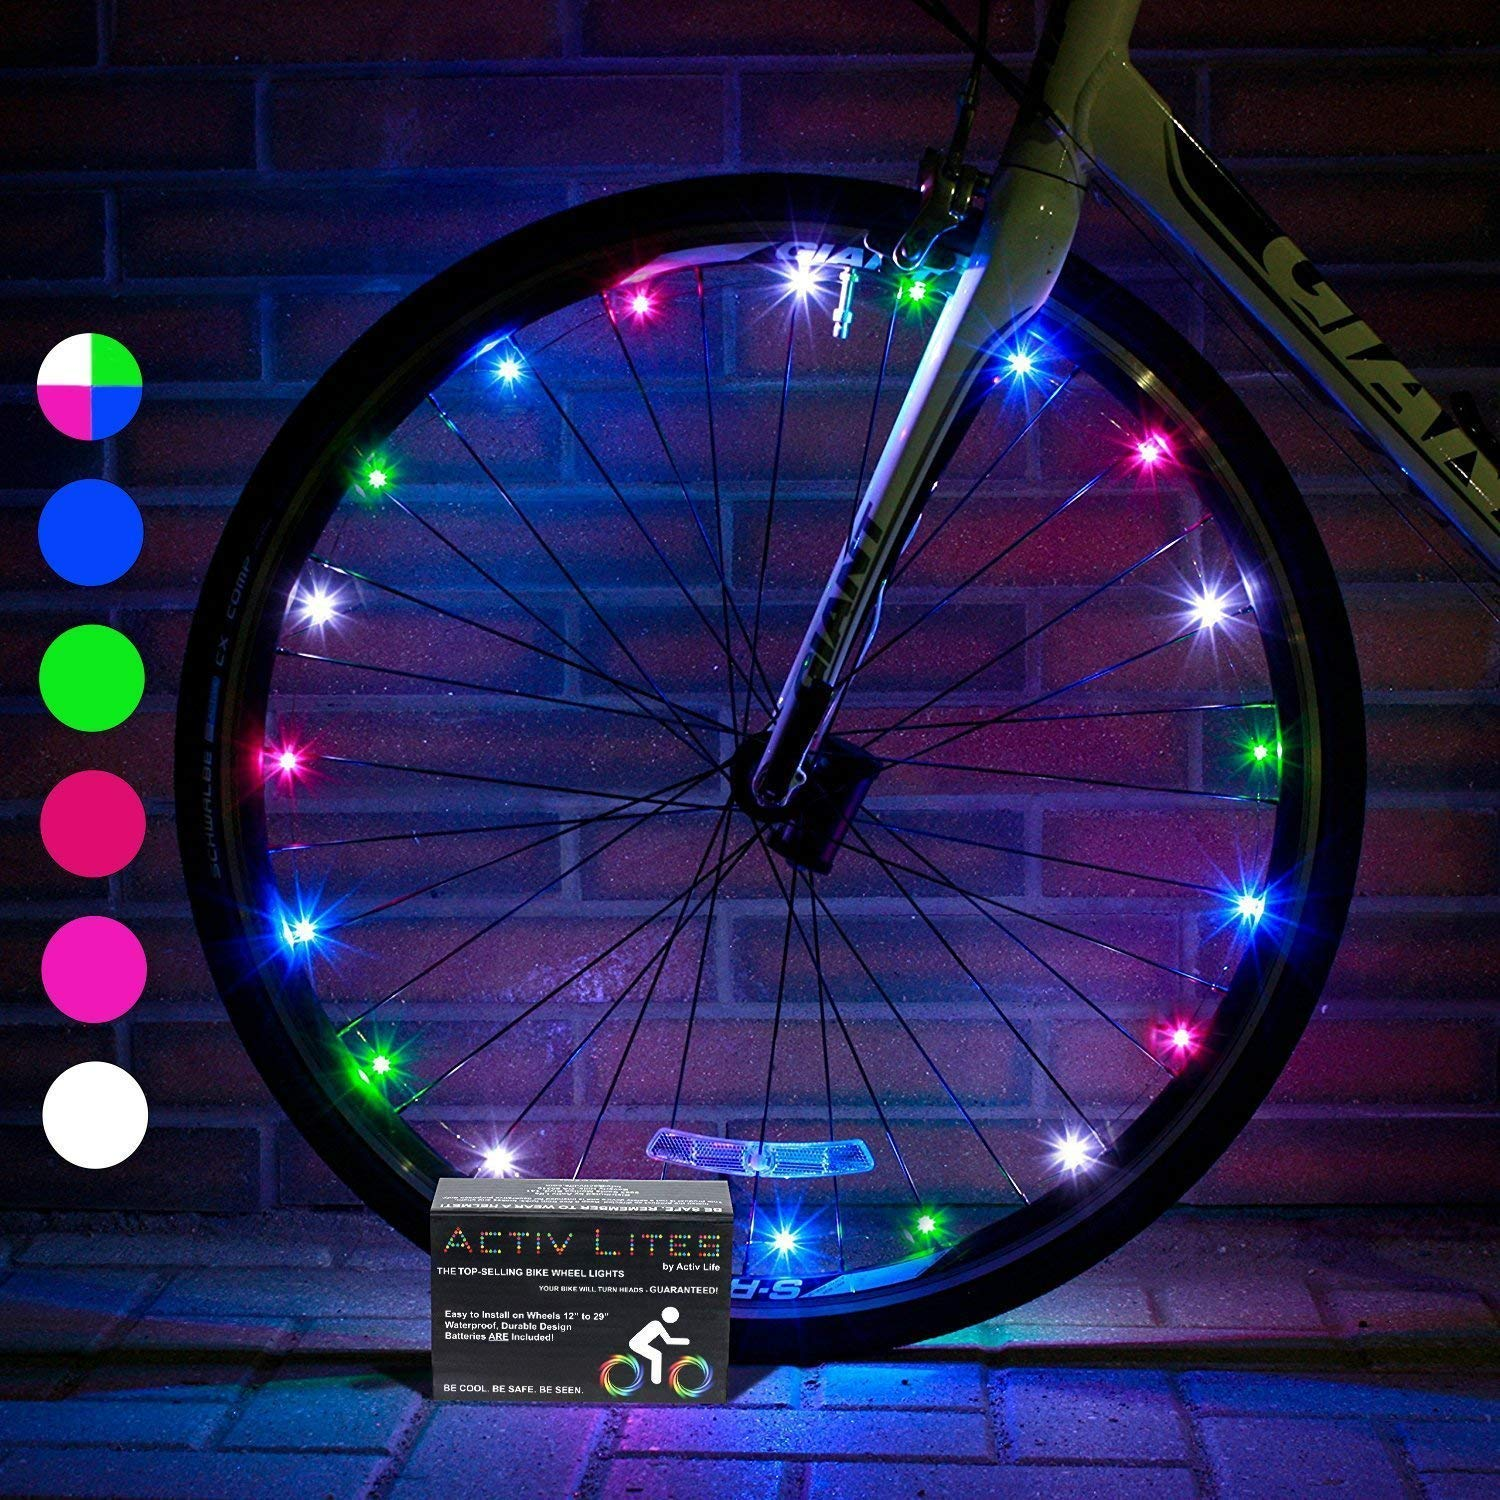 Activ Life LED Bicycle Light (1 Tire, Multicolor) Xmas Gifts for Kids Fun, Top Secret Santa Gifts 2019 X-mas, Popular Children Toys, Best for Hot Outdoor Family Child Bday Party Regalos de Navidad - gift-siri